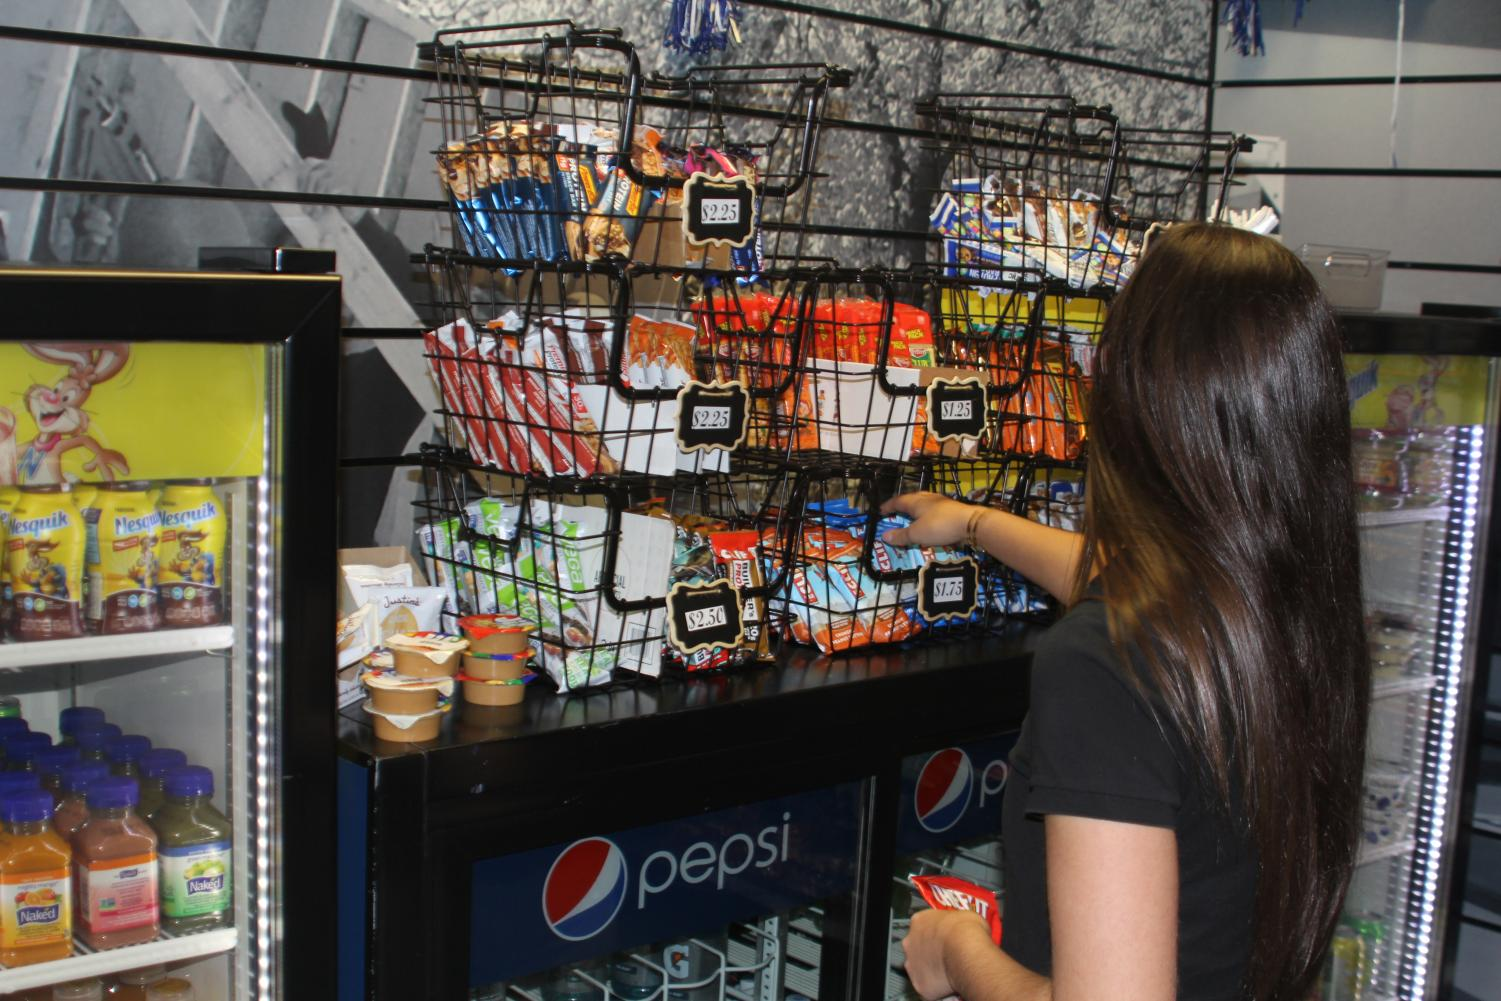 Prices on baskets of snacks at Wings reflect higher prices this semester.